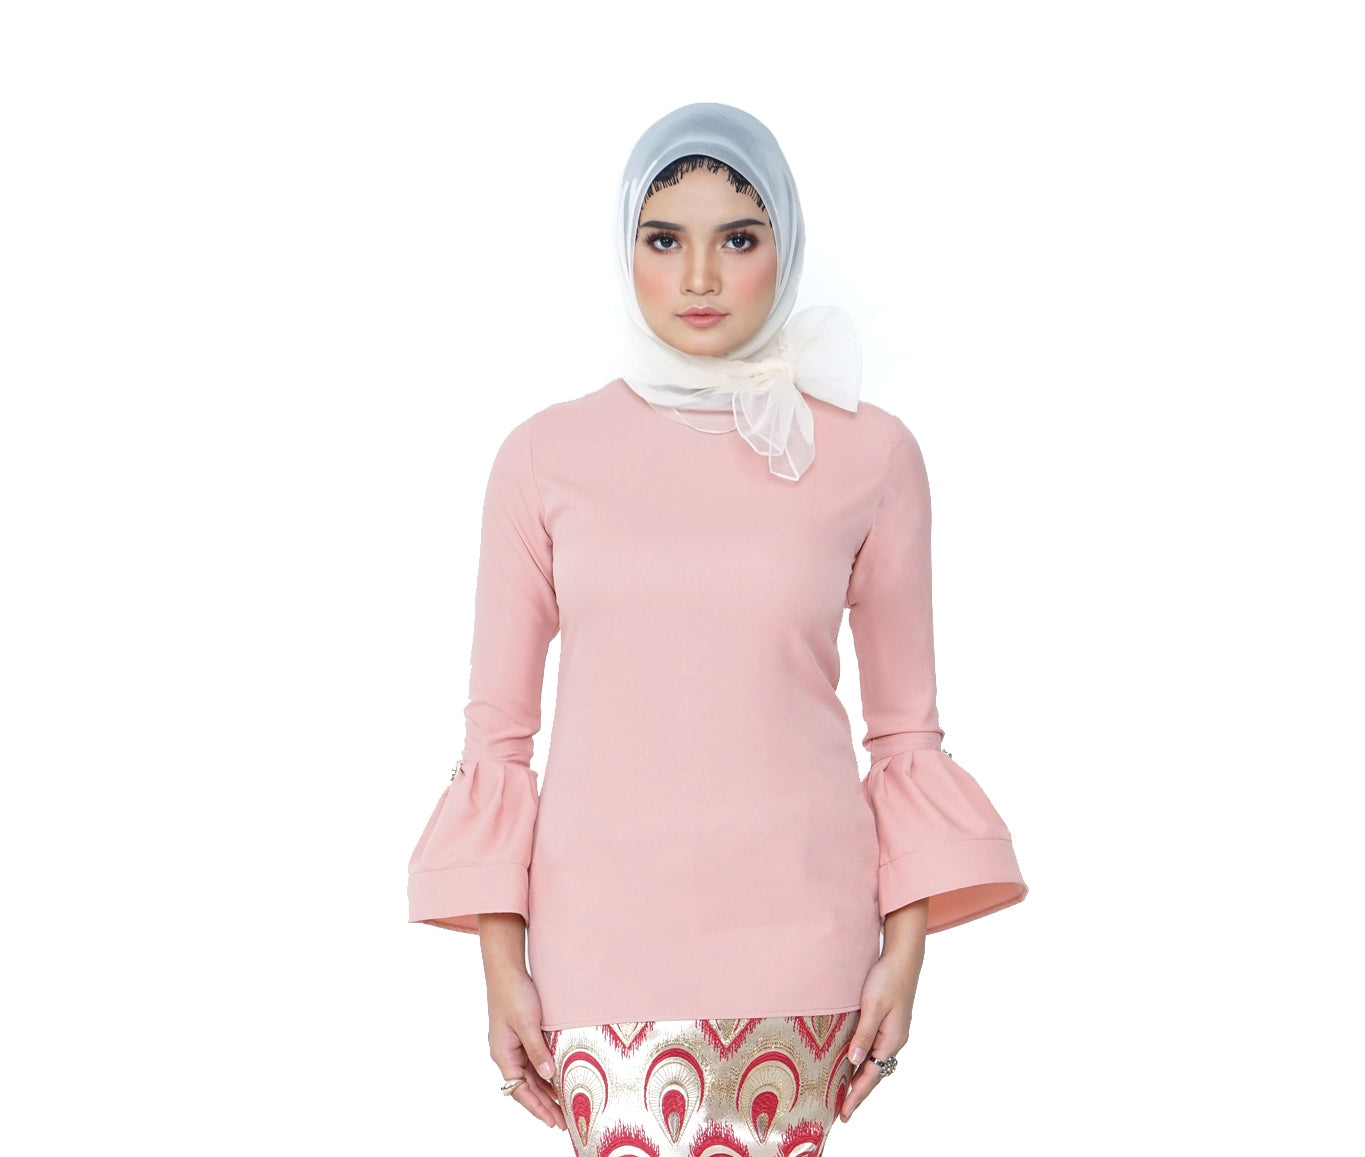 Arabell Blouse Pink